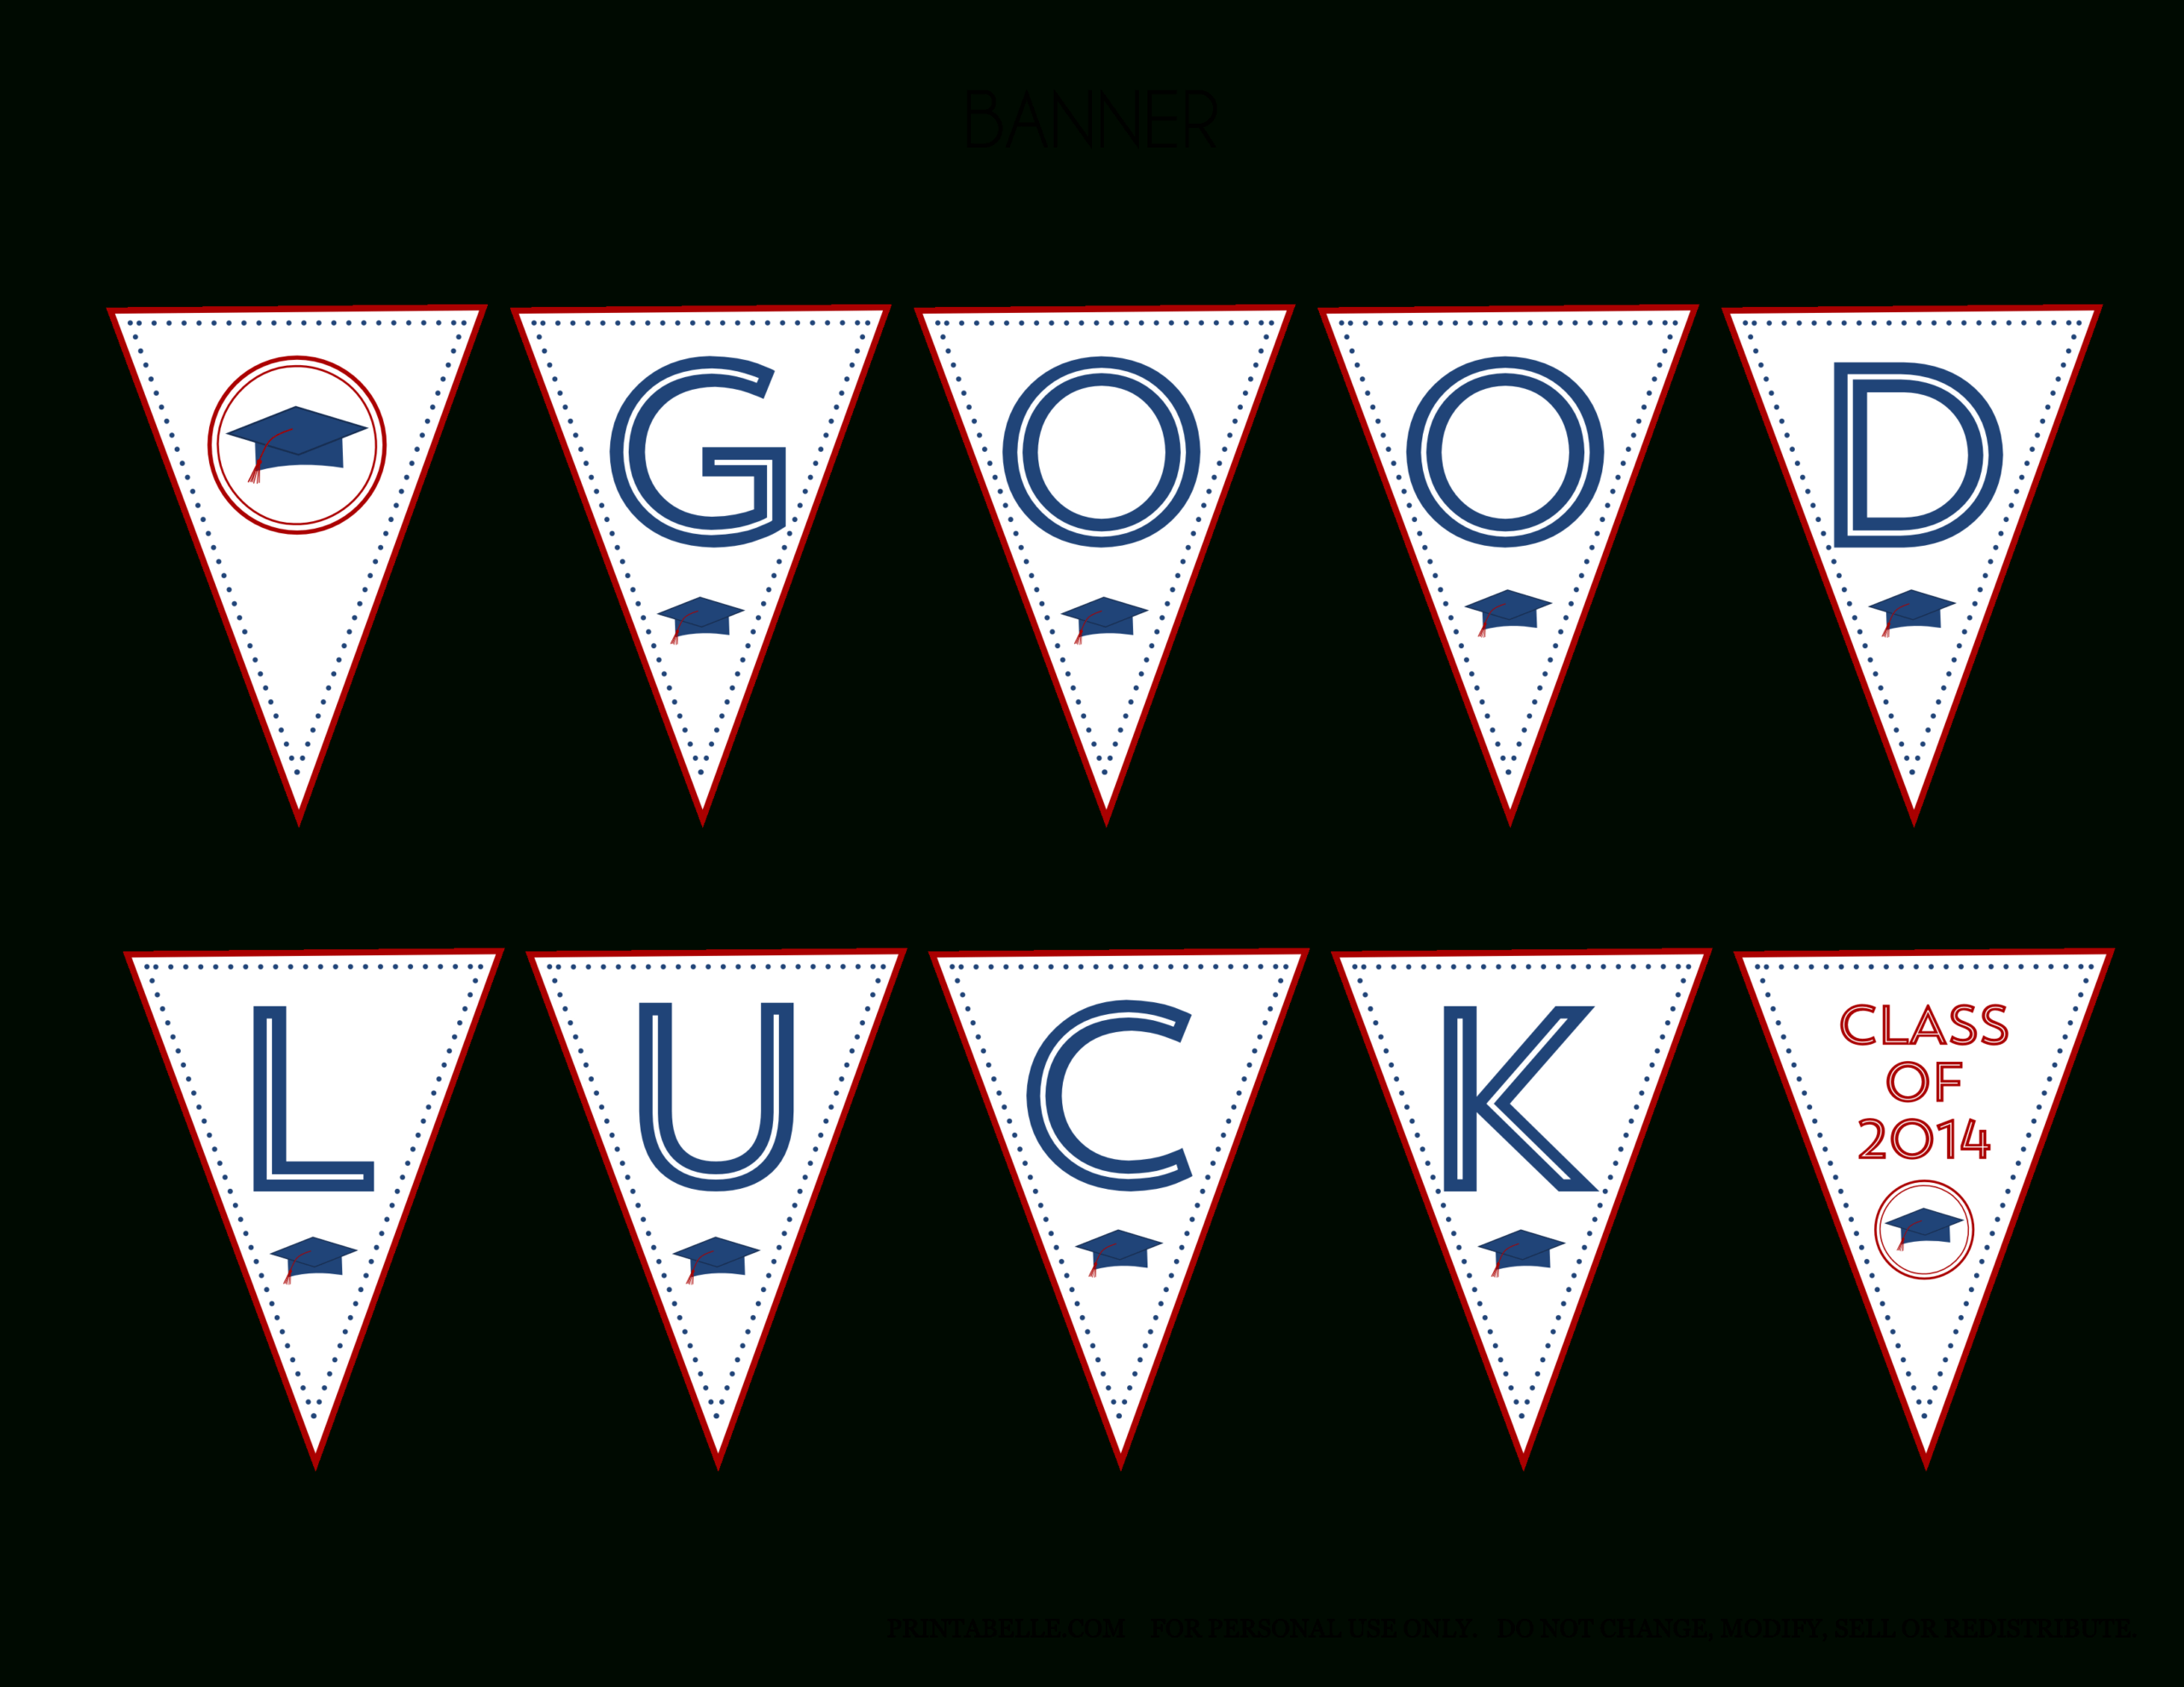 Free 2014 Graduation Party Printables From Printabelle Regarding Good Luck Banner Template